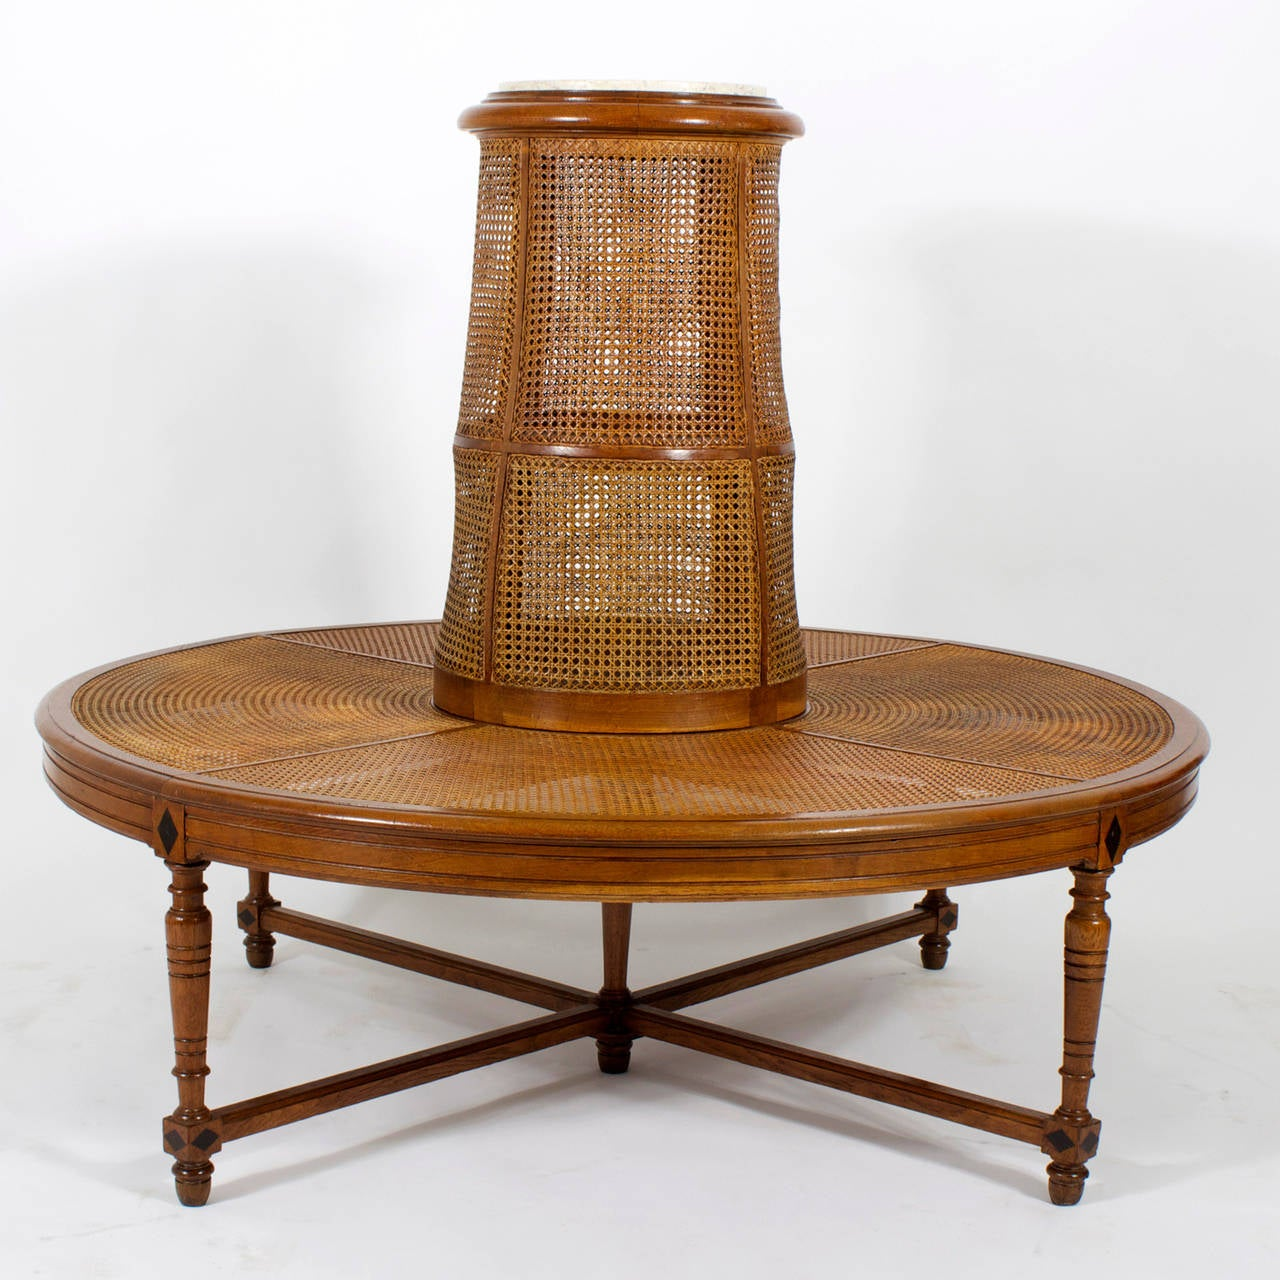 A rare and exciting, vintage round or borne settee with a distinctive tropical feel, constructed of oak, featuring well developed turned legs with diamond inlays, beaded X-stretcher, caned seat and back topped with a marble insert, to display your